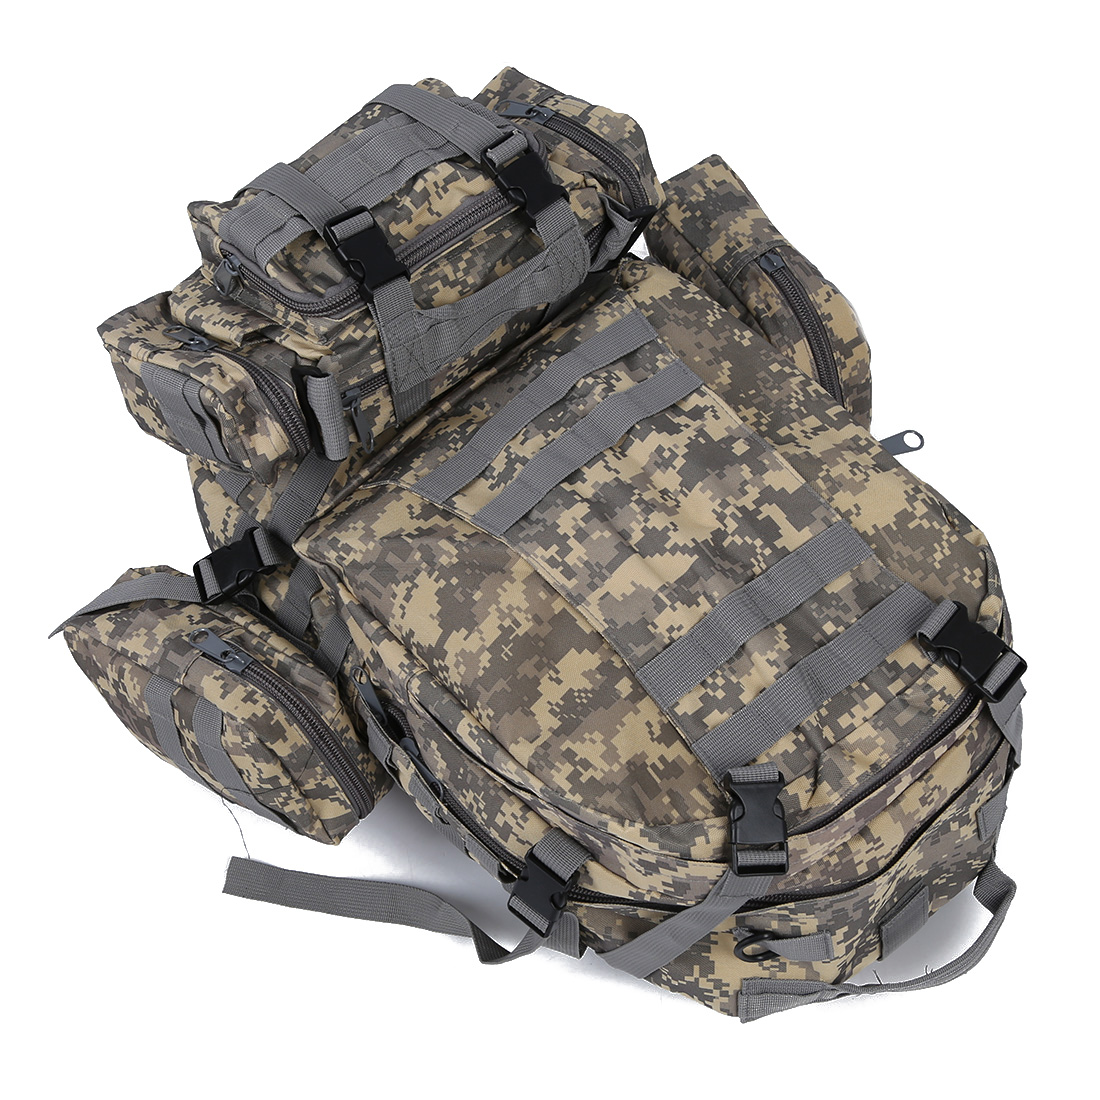 Hot 50 L 3 Day Assault  Outdoor Military Rucksacks Backpack Camping bag - AUC Camouflage l day l day ld001awito25